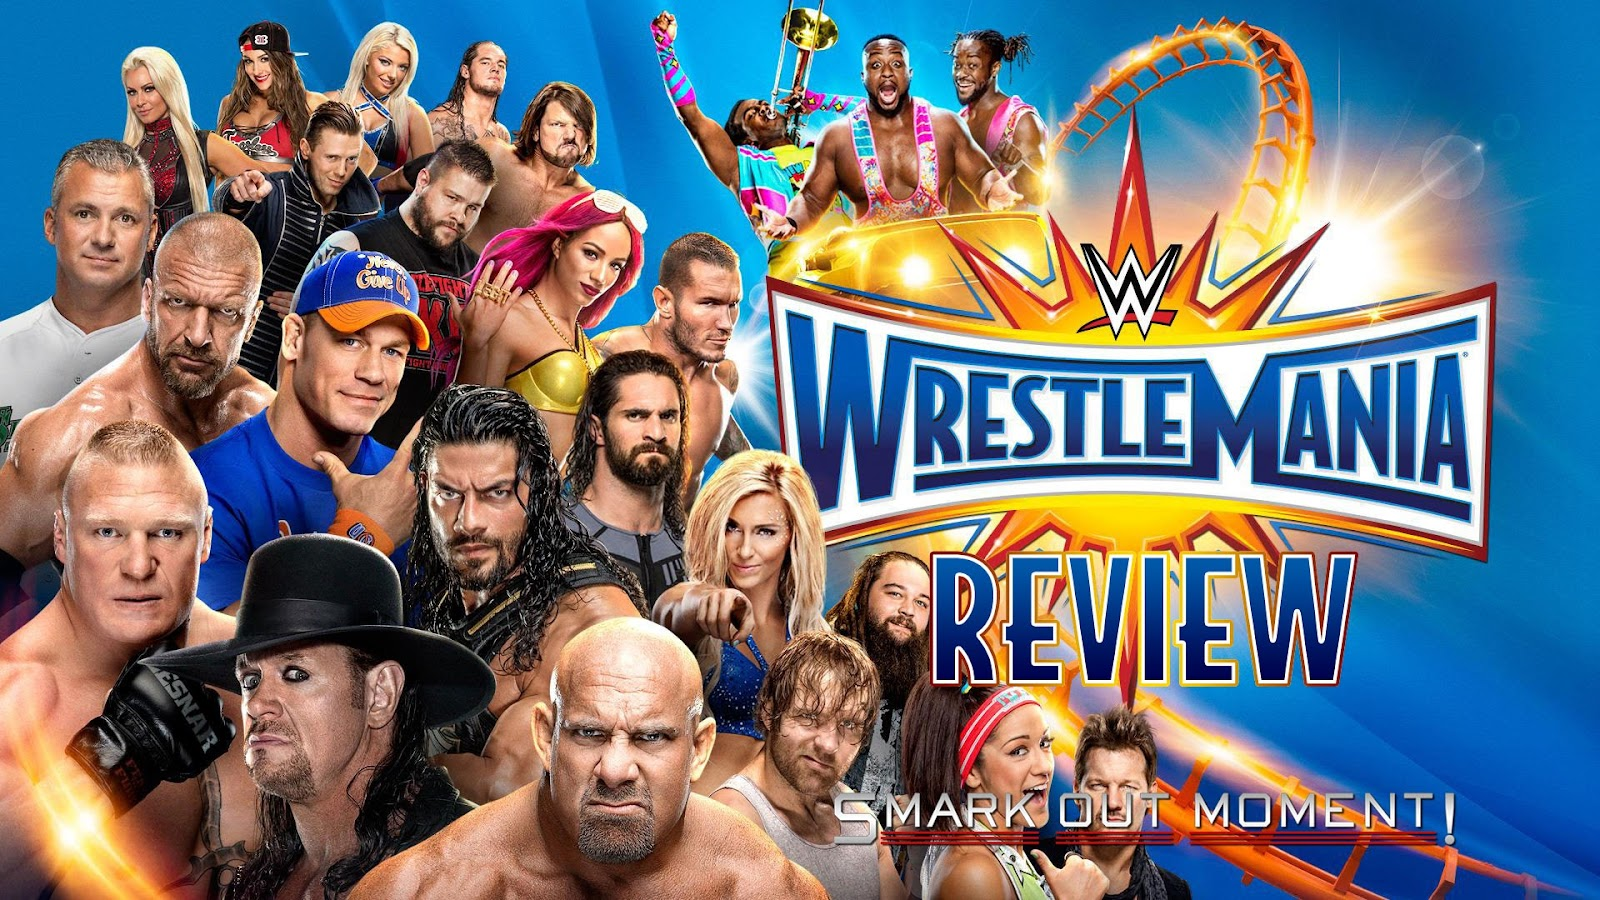 WWE WrestleMania 33 Recap and Review Podcast